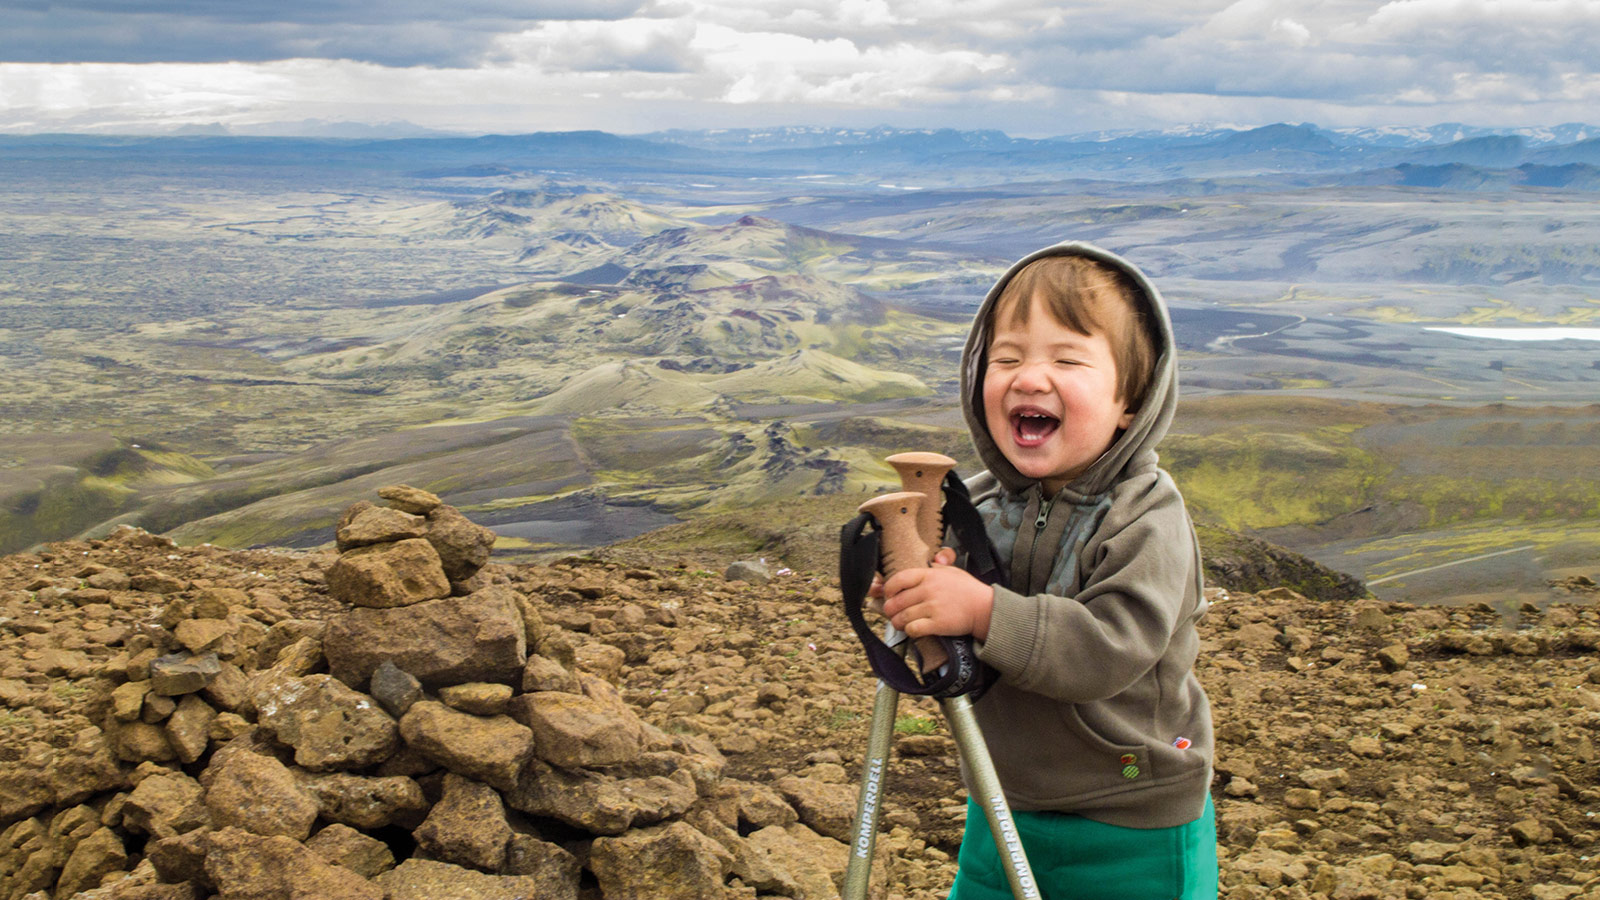 Hiking in Iceland is one of the most unforgettable experiences in the world. But families shouldn't be left out! Gere are the best hikes in Iceland for kids